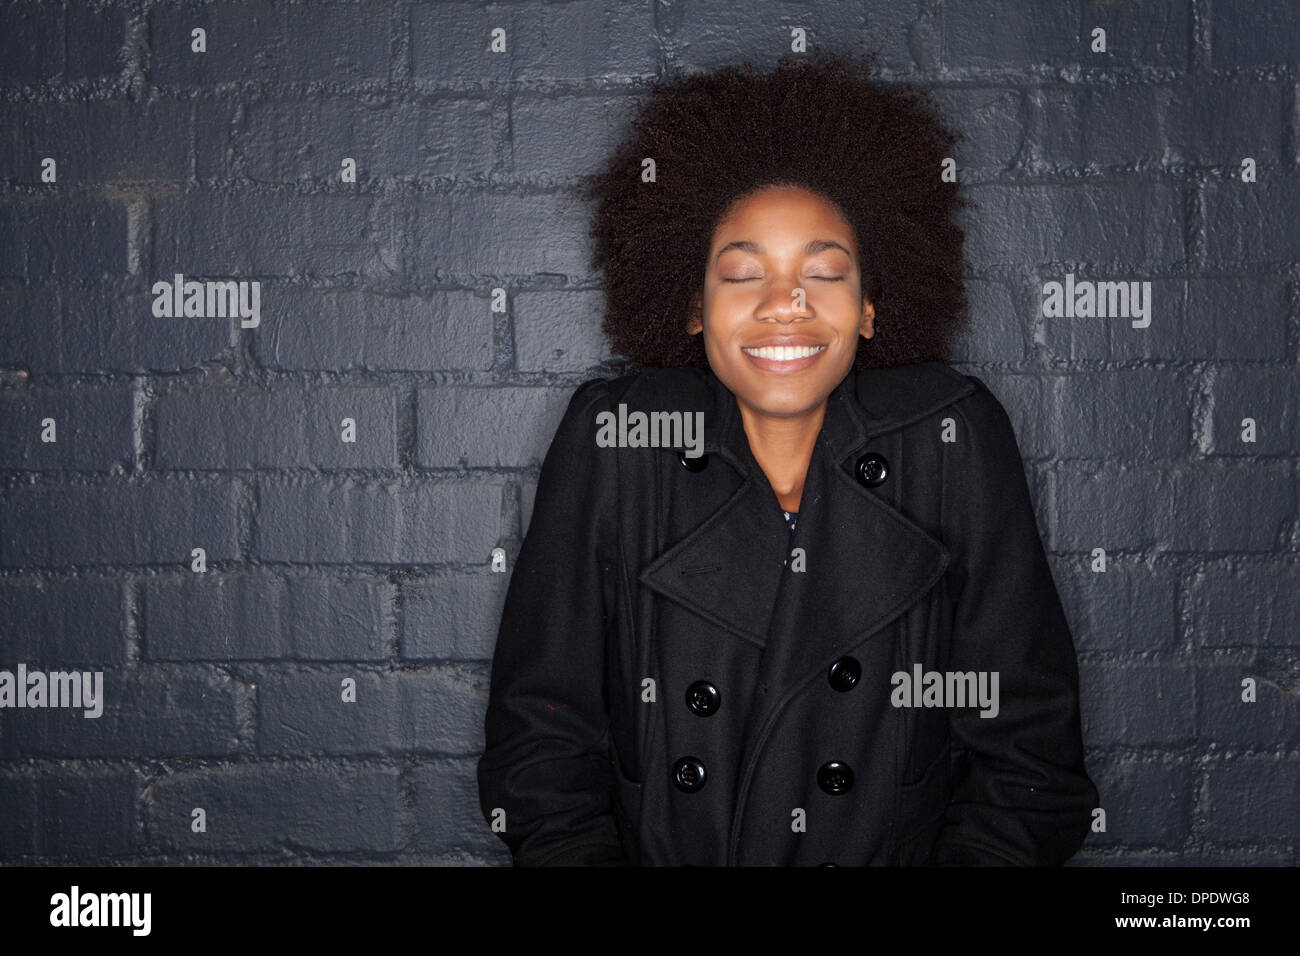 Young woman by black brick wall wearing black jacket Stock Photo